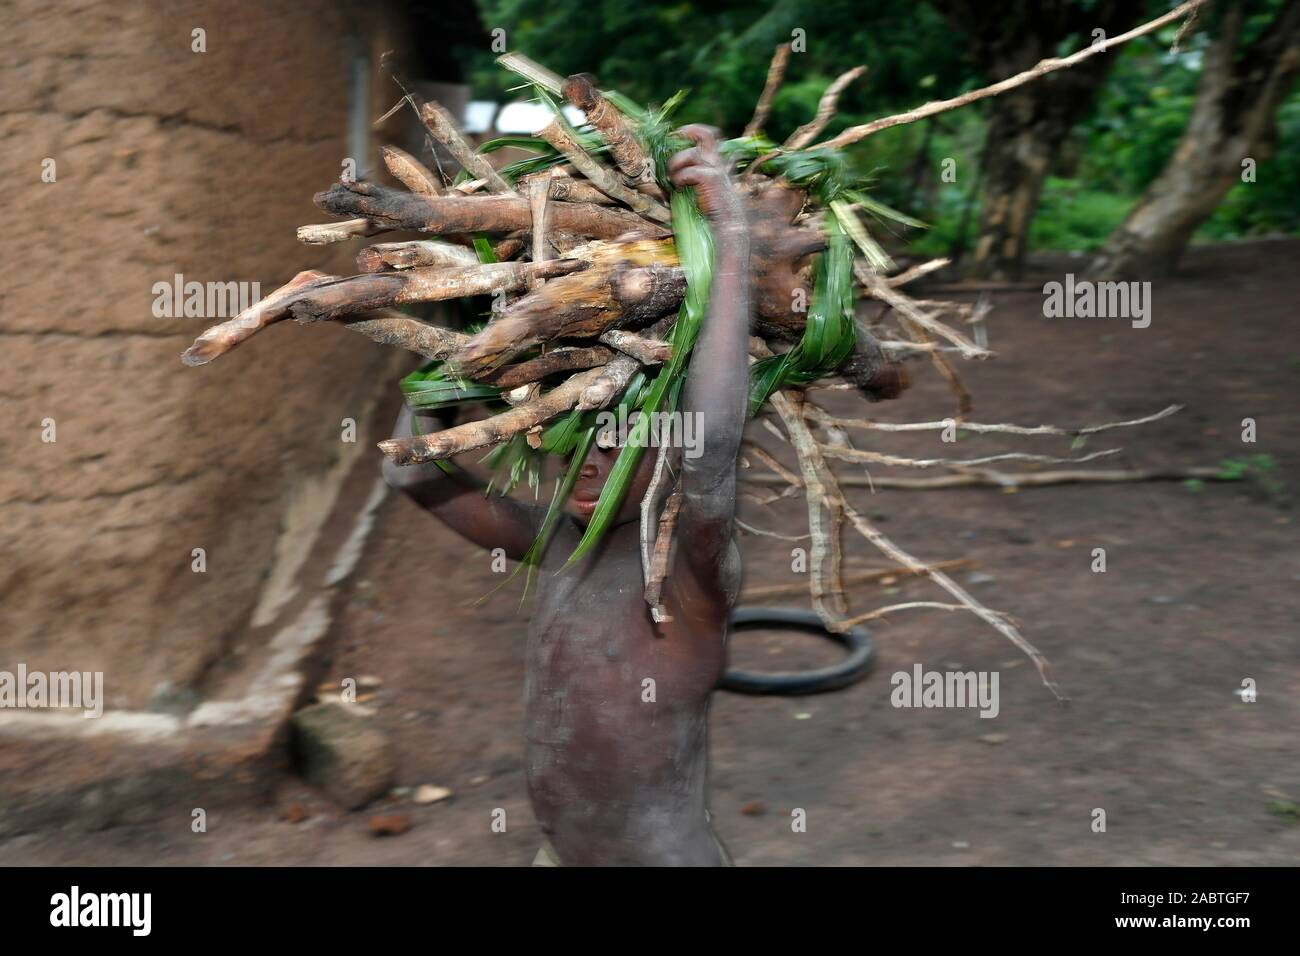 African village. Boy carrying firewood on his head.  Daily life.  Datcha-Attikpaye. Togo. Stock Photo